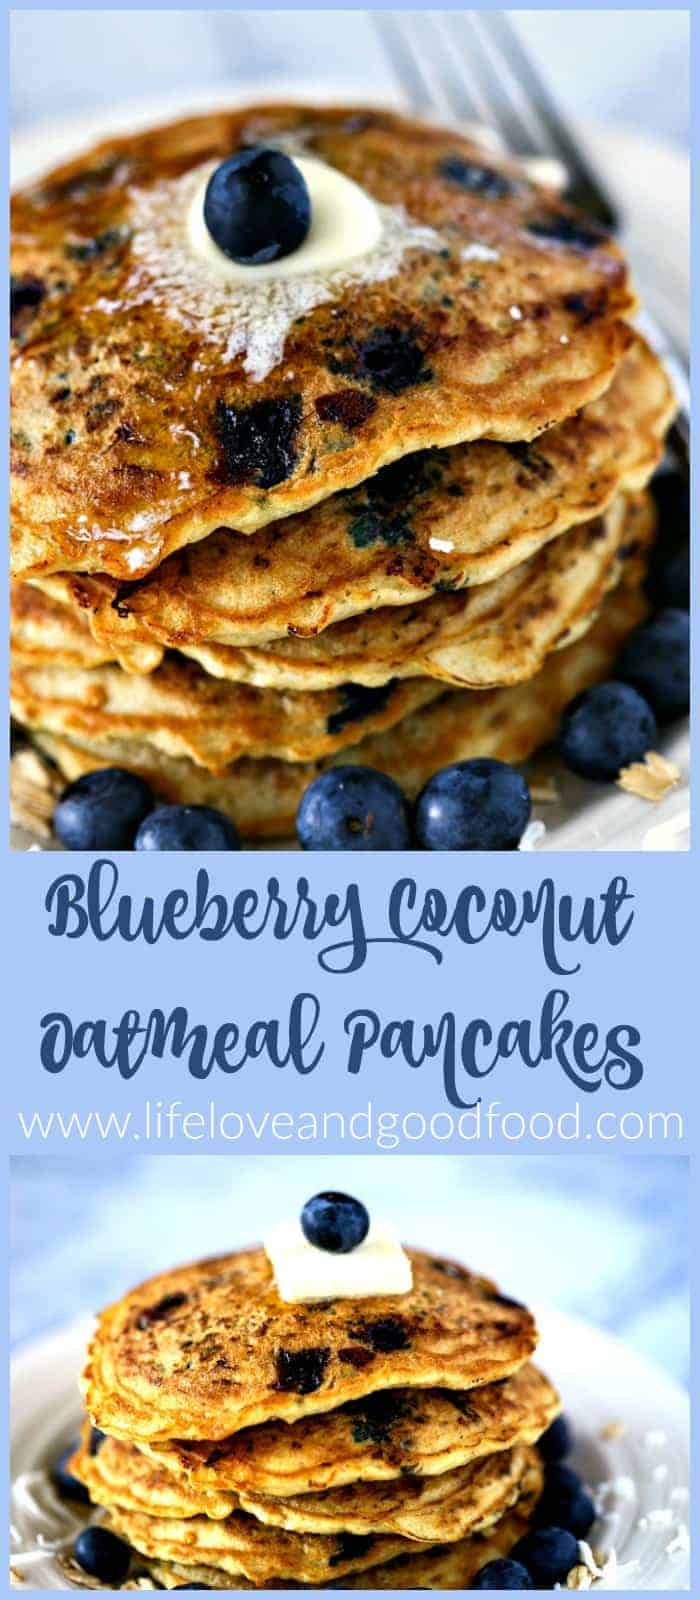 Make a batch of Blueberry Coconut Oatmeal Pancakes and serve them up with more fresh blueberries and maple syrup for a fun and festive breakfast or brunch.